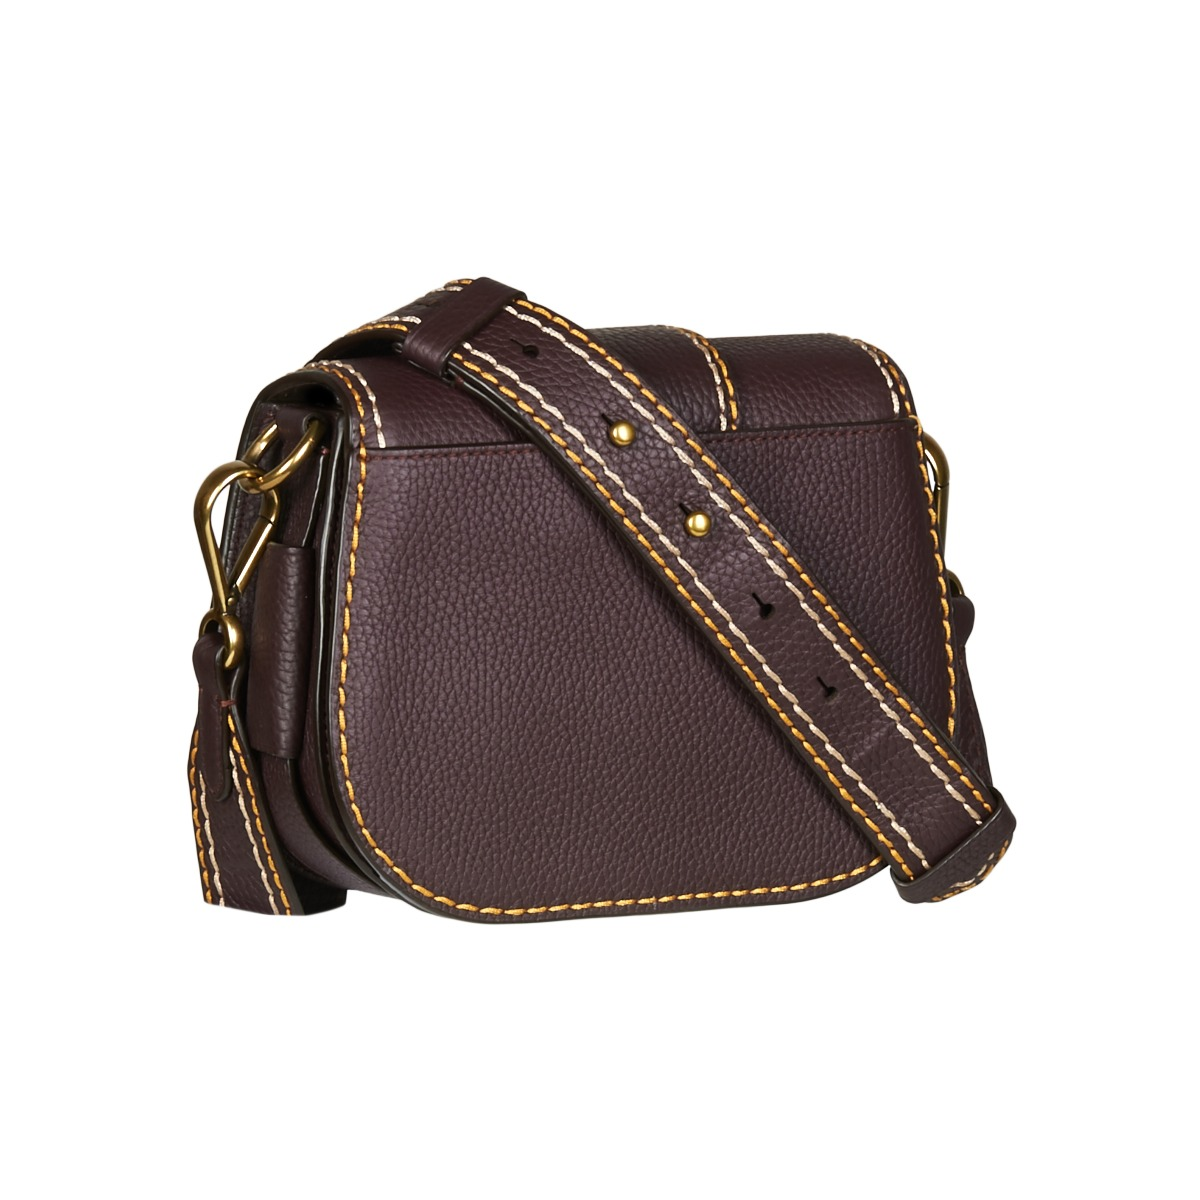 991740b6320266 ... Borsa a tracolla donna Polo Ralph Lauren BELT SADDLE-CROSSBODY ...